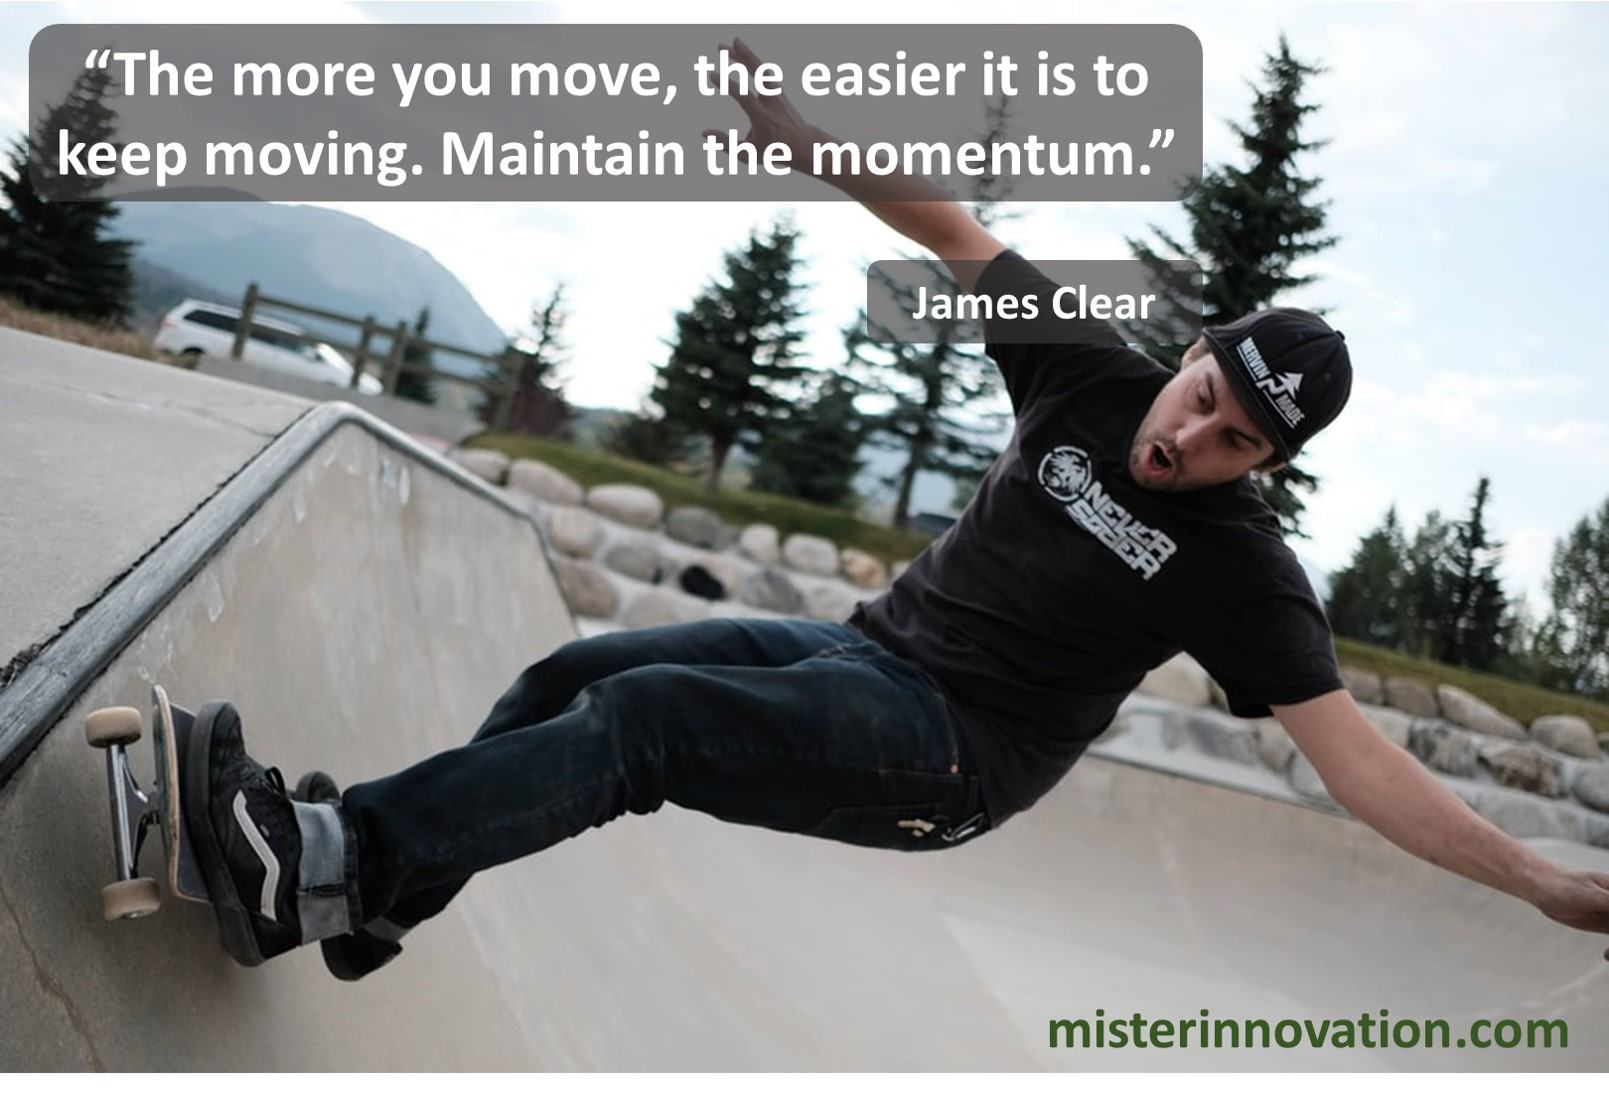 James Clear Momentum